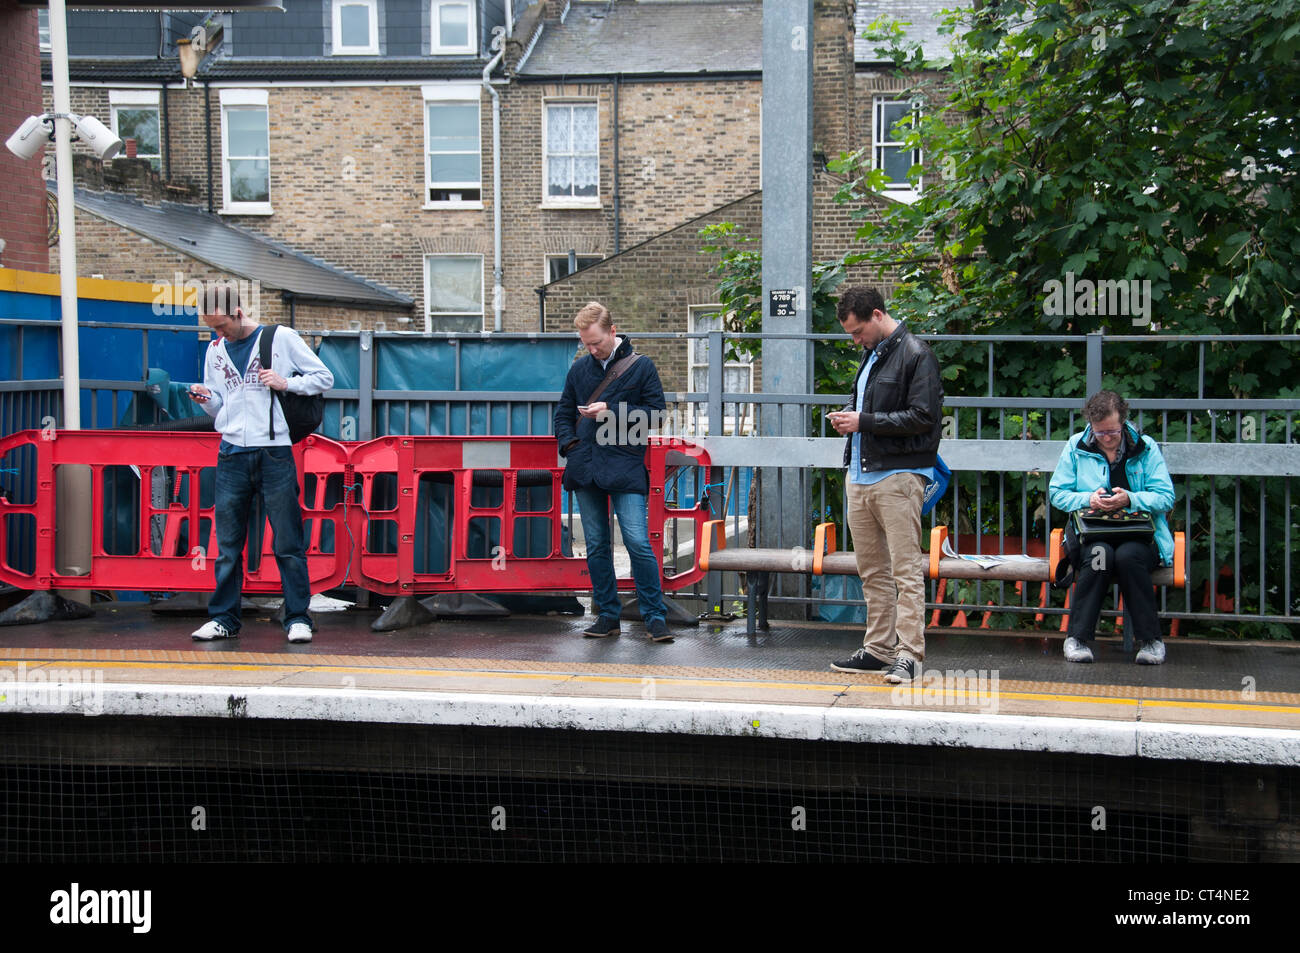 Four people on station platform at Hackney Central, all looking at their mobile phones - Stock Image